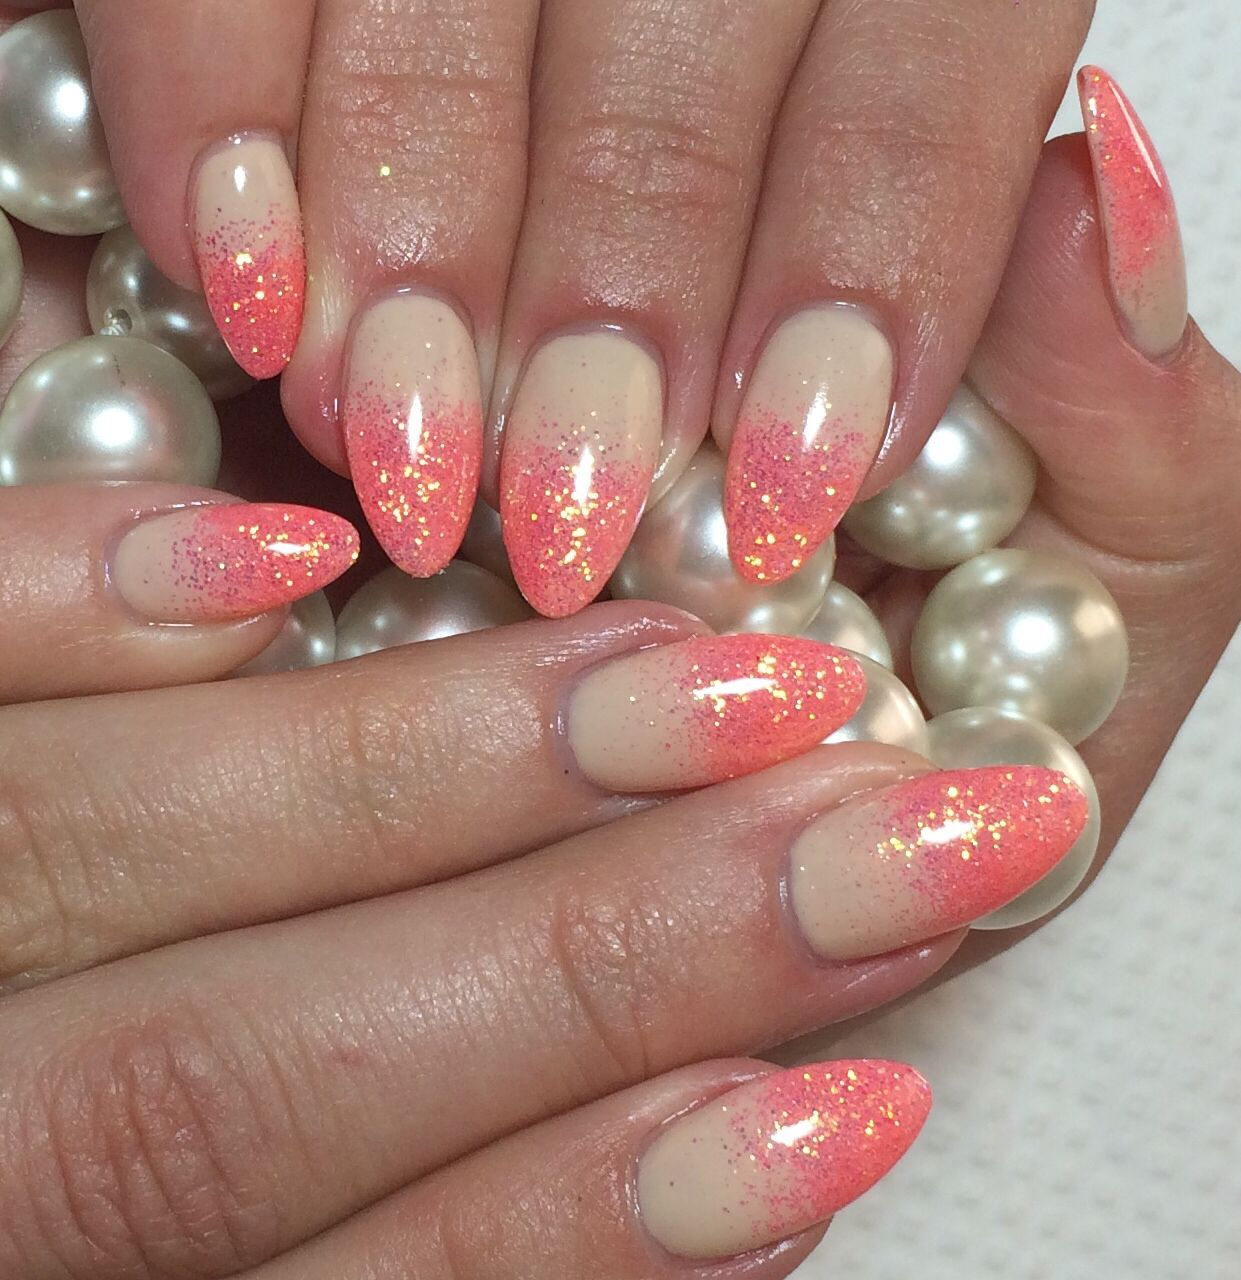 Nude Nails with Coral Ombré  Almond Nails Summer 2014 Glitter Nail Art Design #ByMargarita